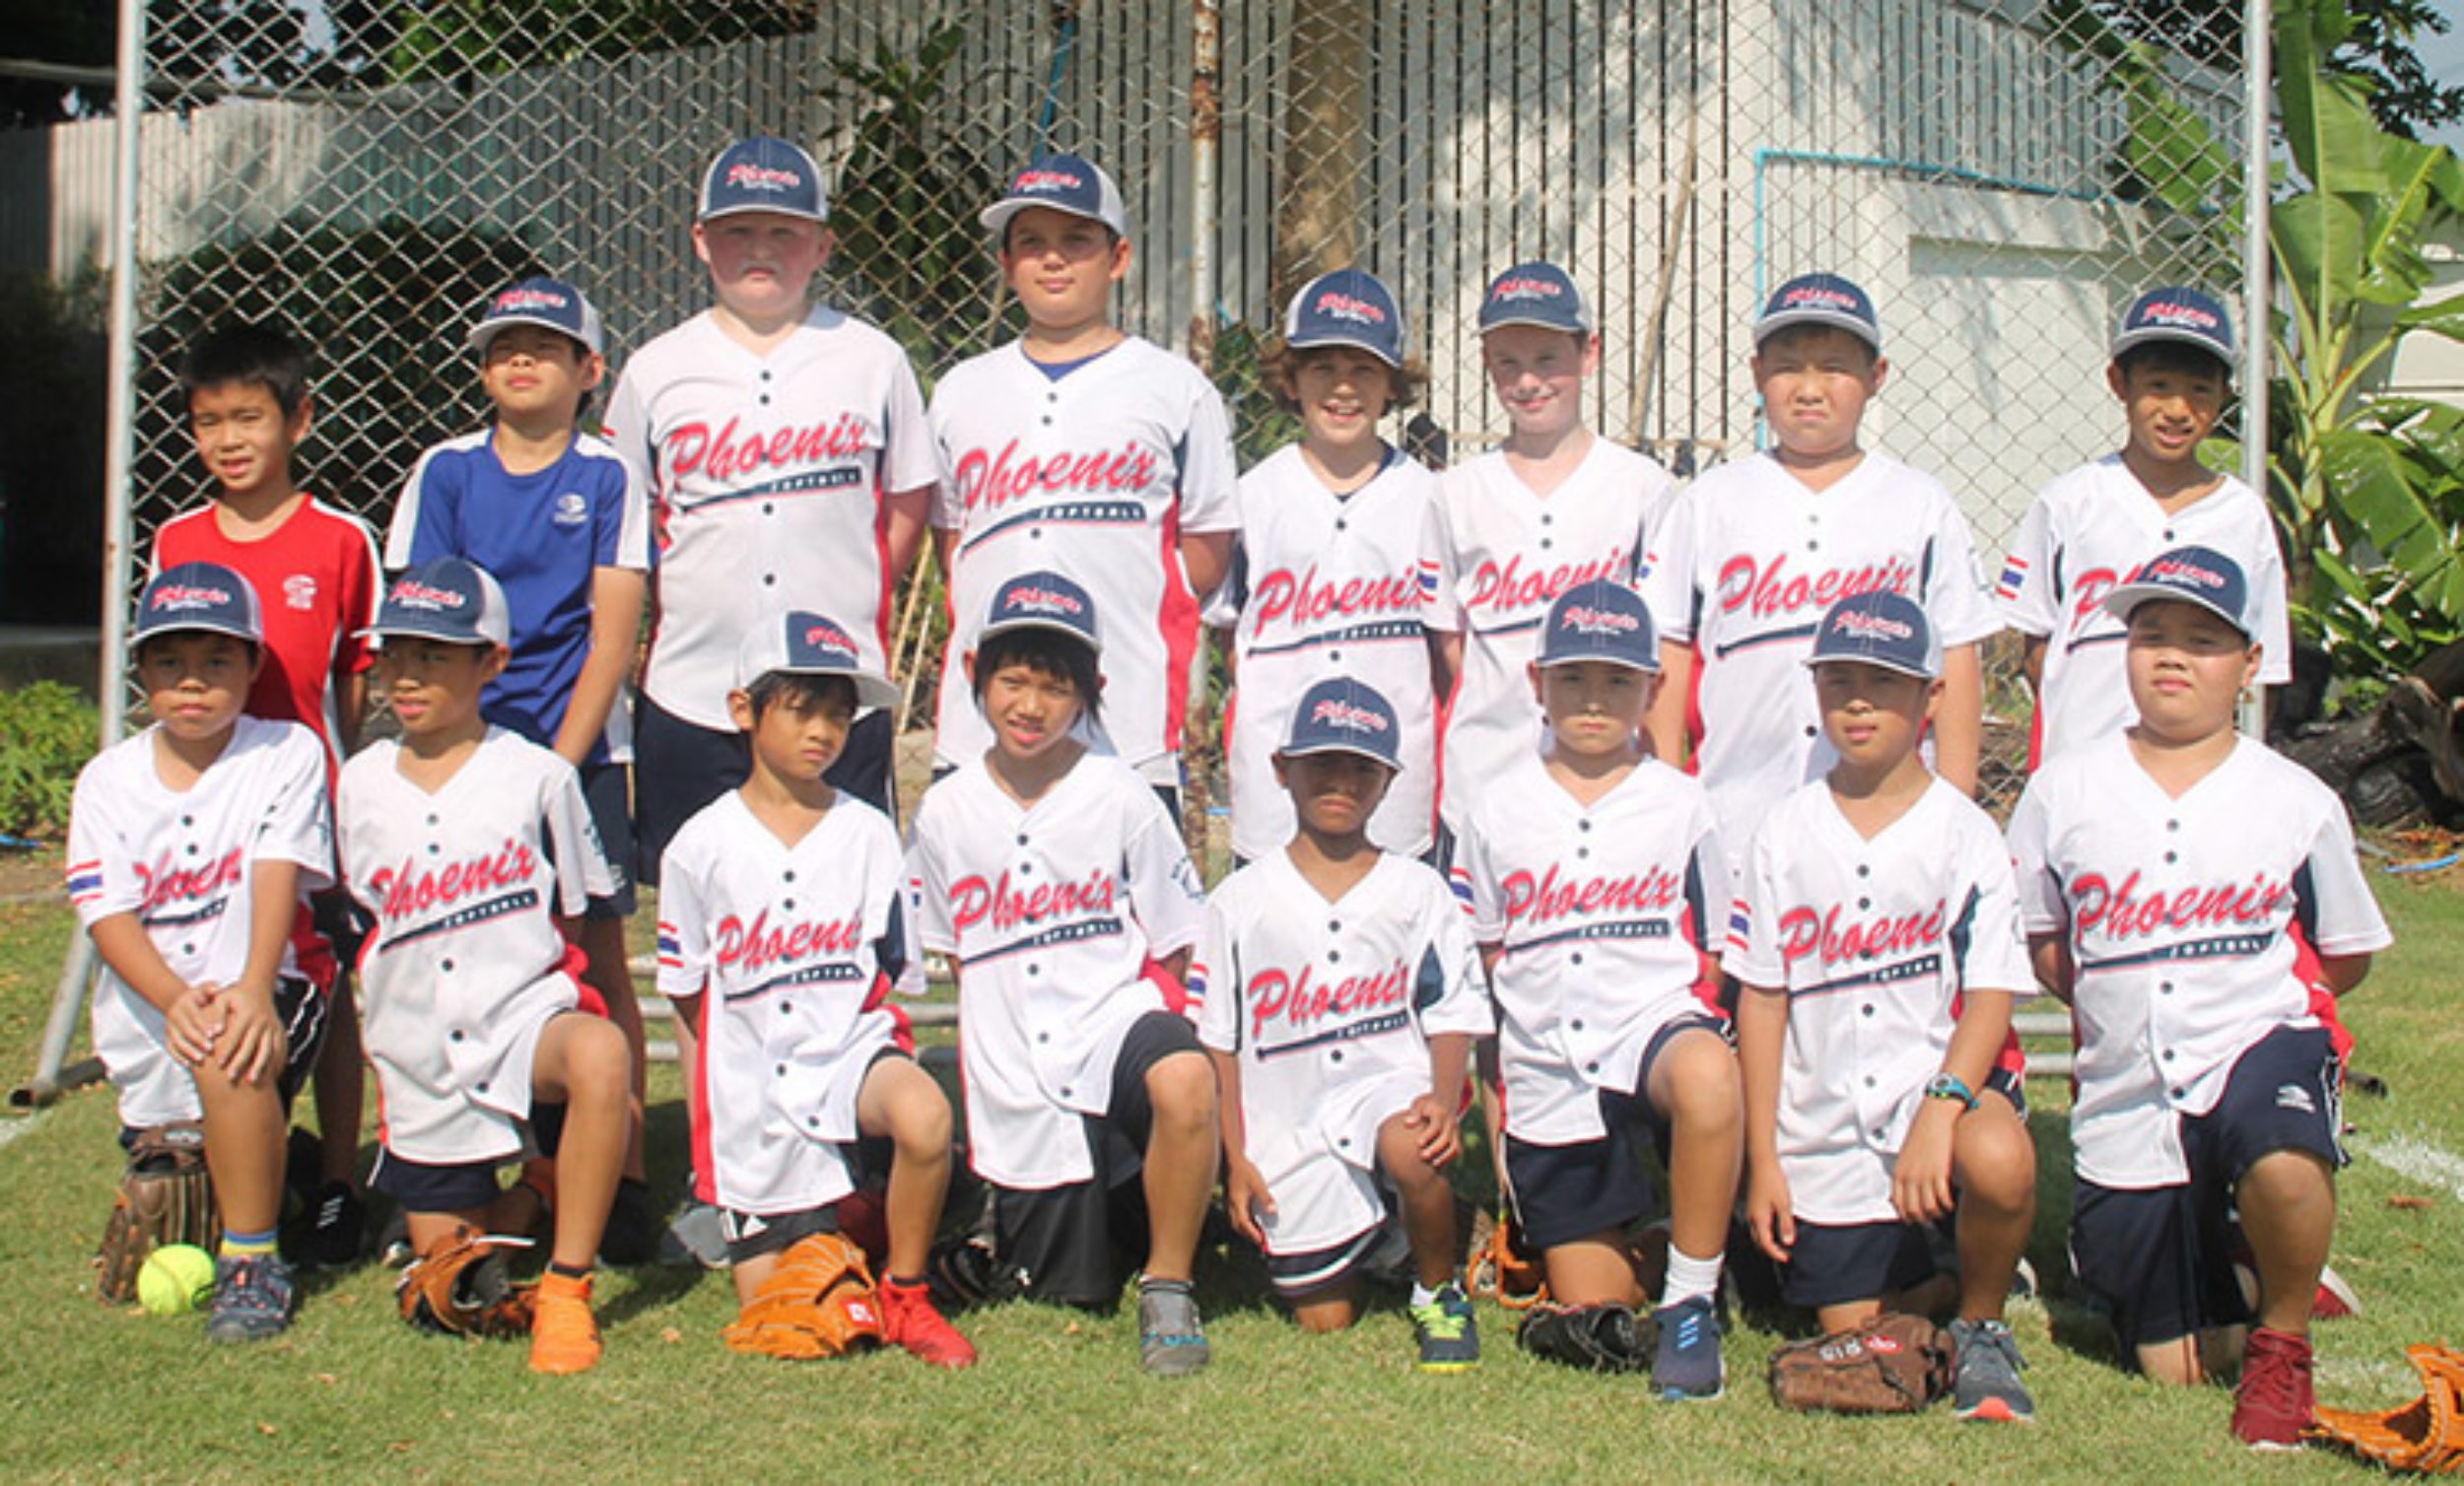 U11 Softball Boys